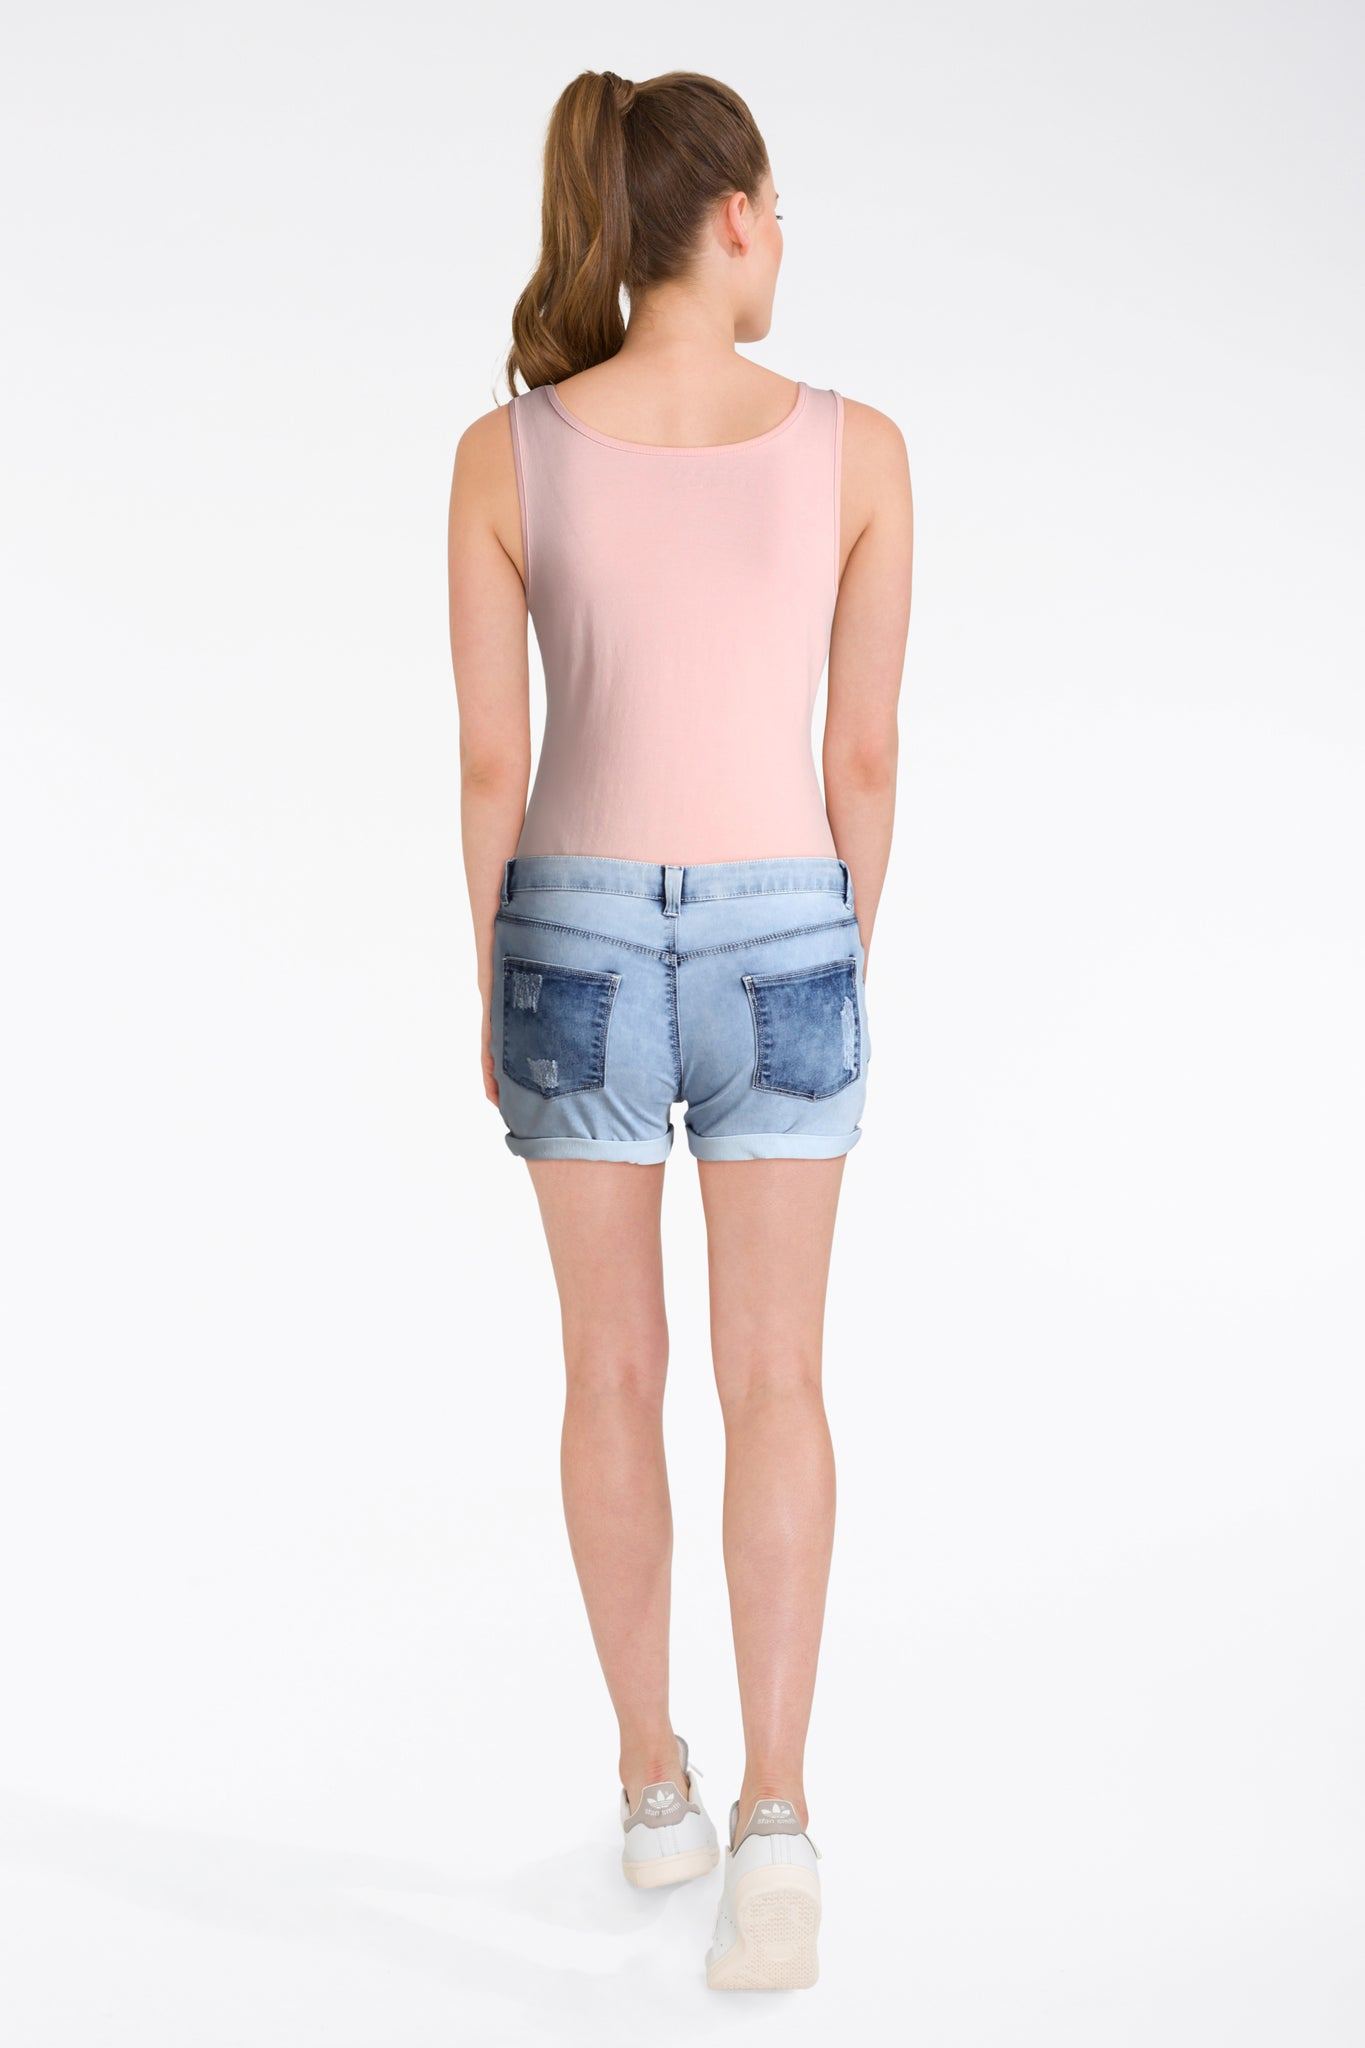 Pink Vest With Denim Shorts